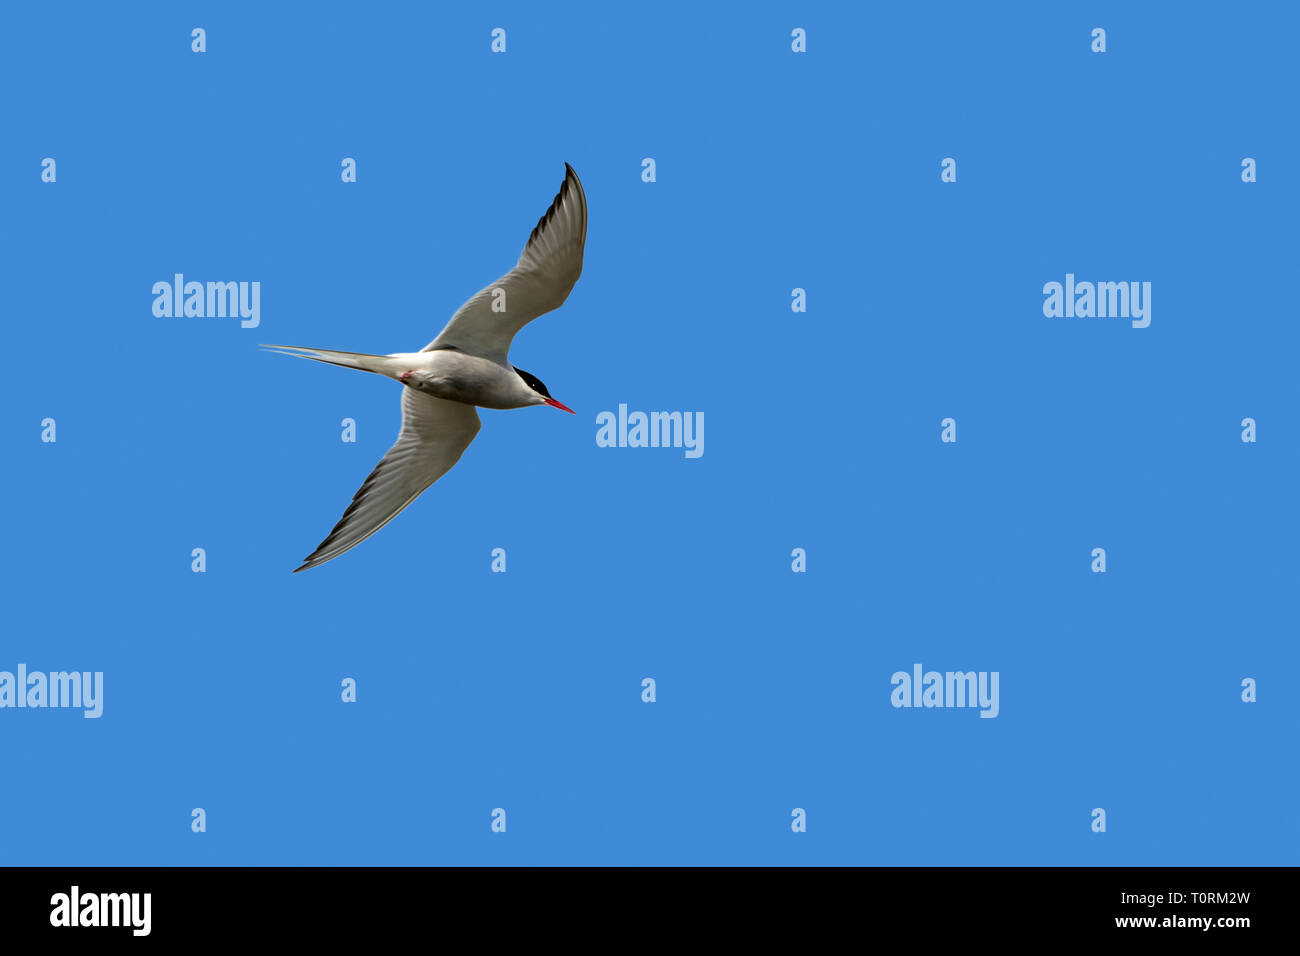 Arctic tern (Sterna paradisaea) in flight against blue sky - Stock Image